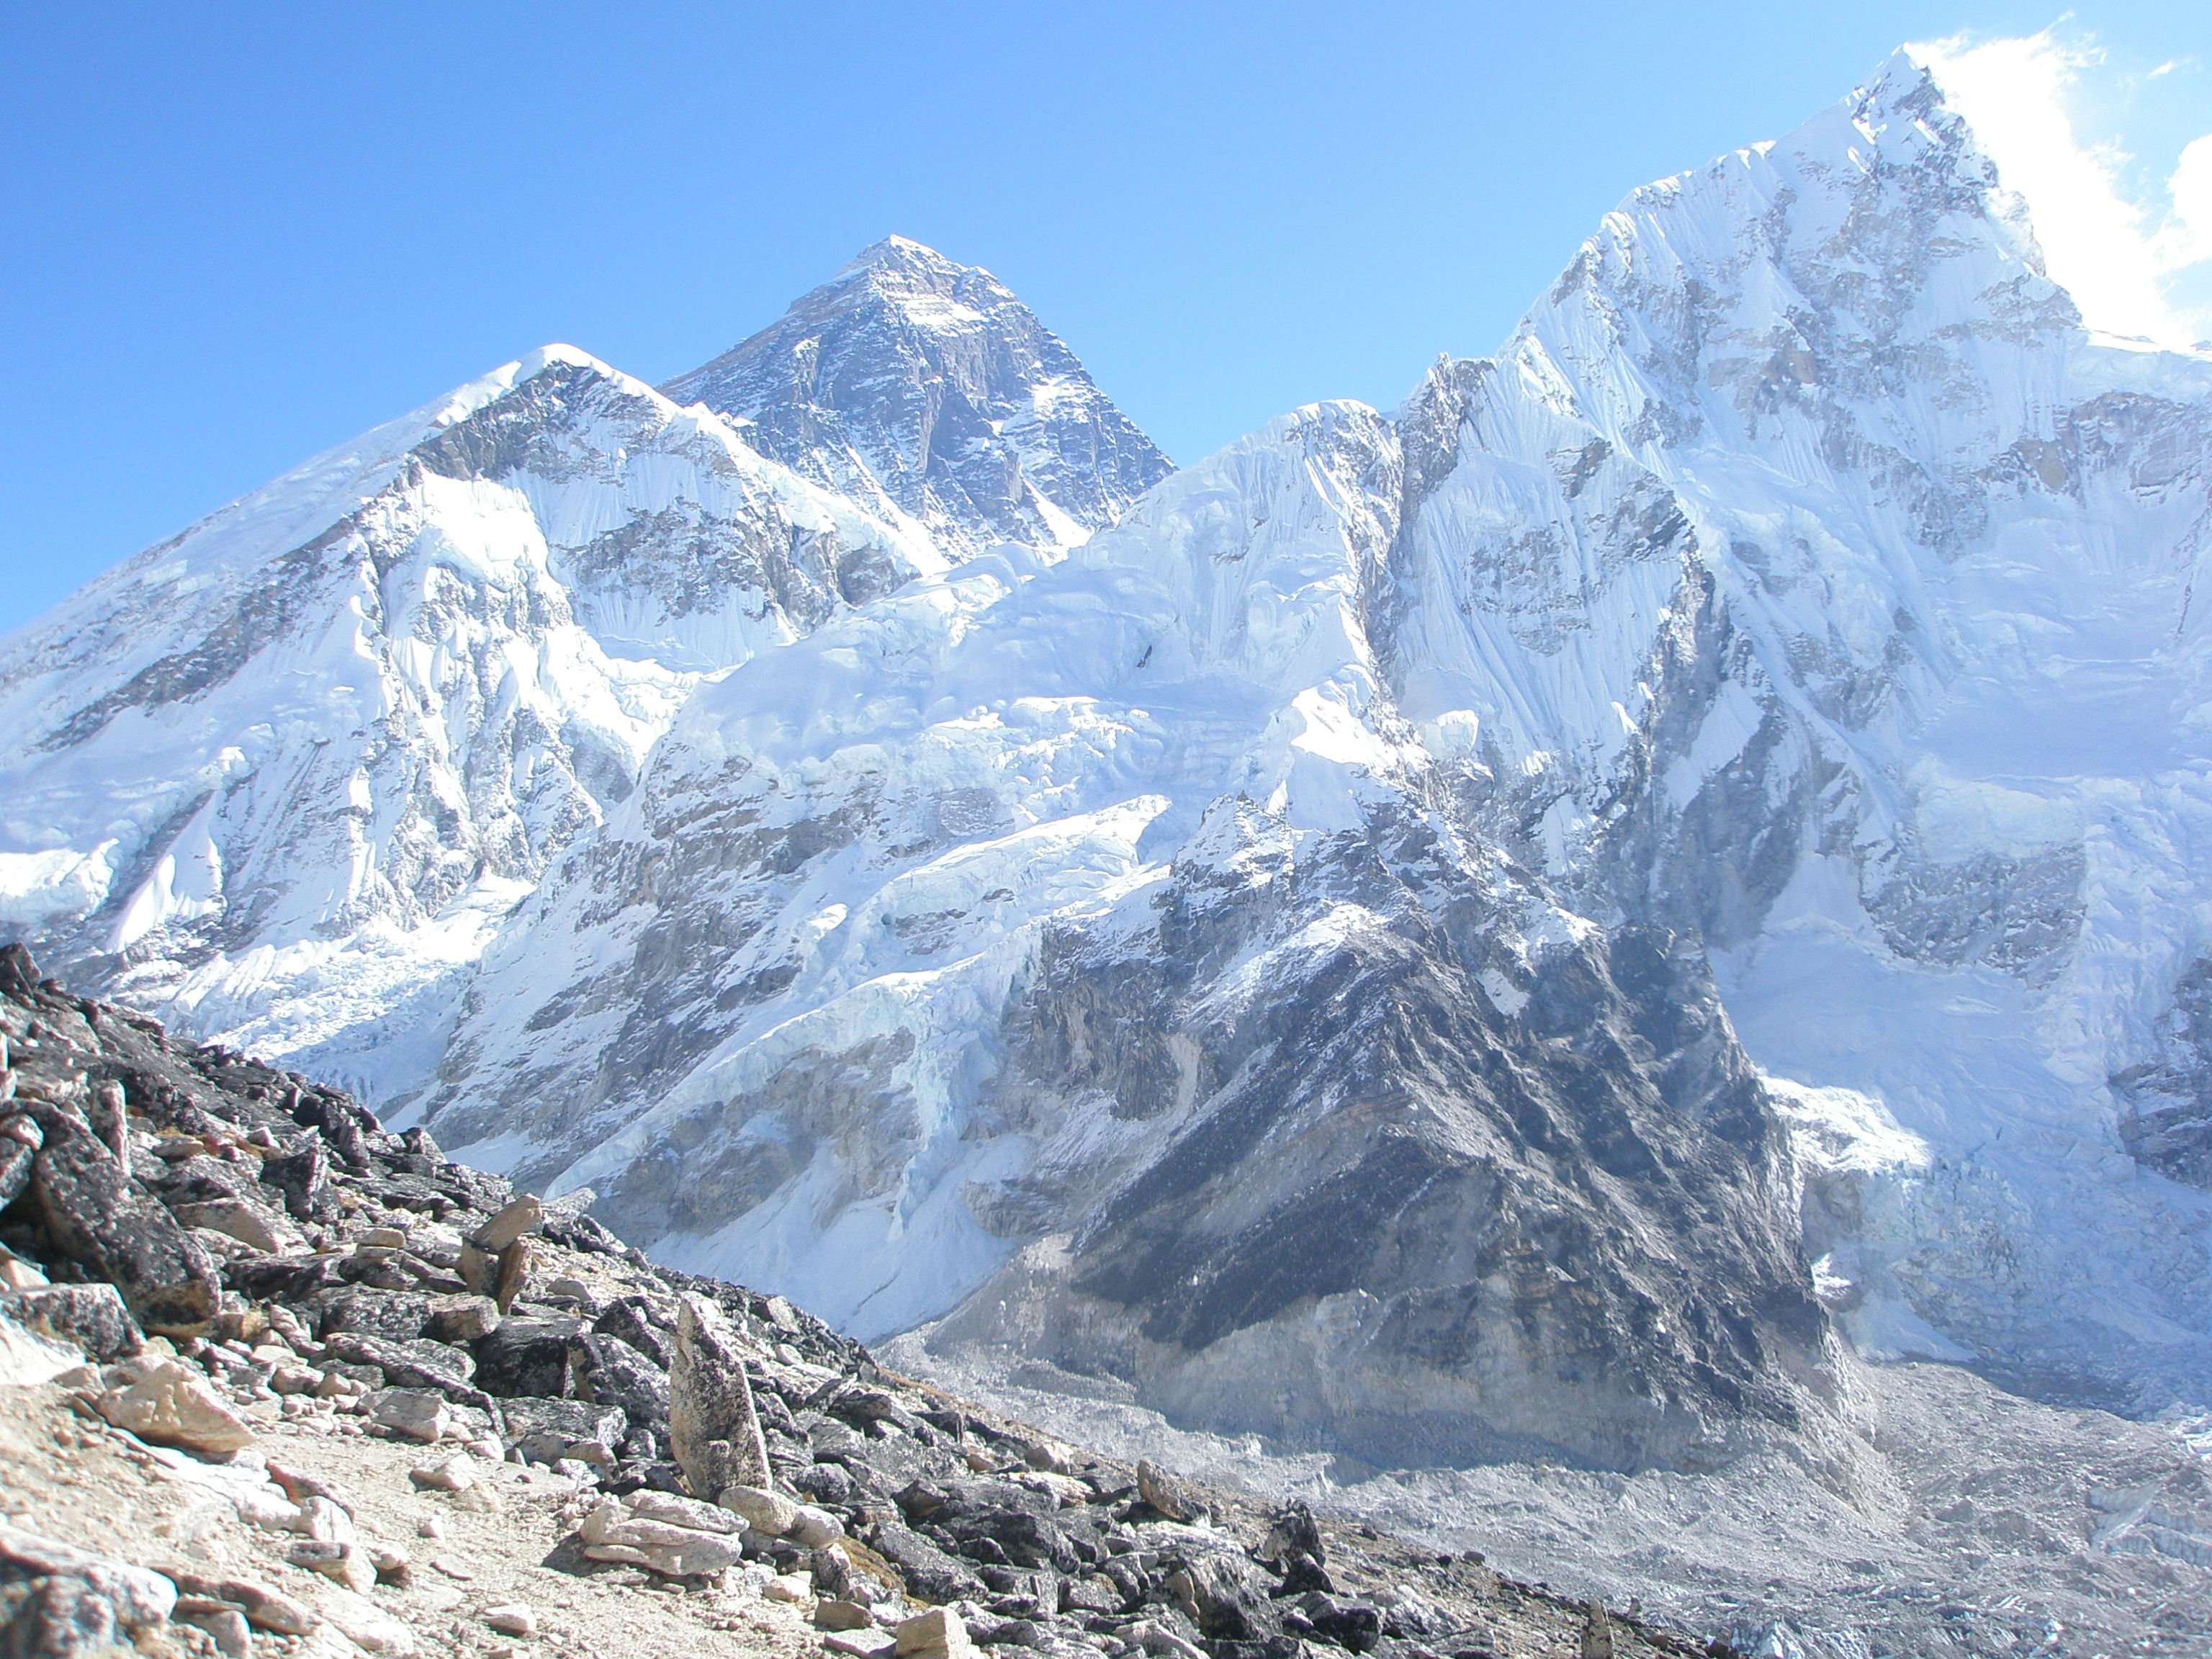 everest essay Essay on everest - everest mount everest, the world's highest point at 29,035 feet, is a special trophy among high altitude mountaineers.